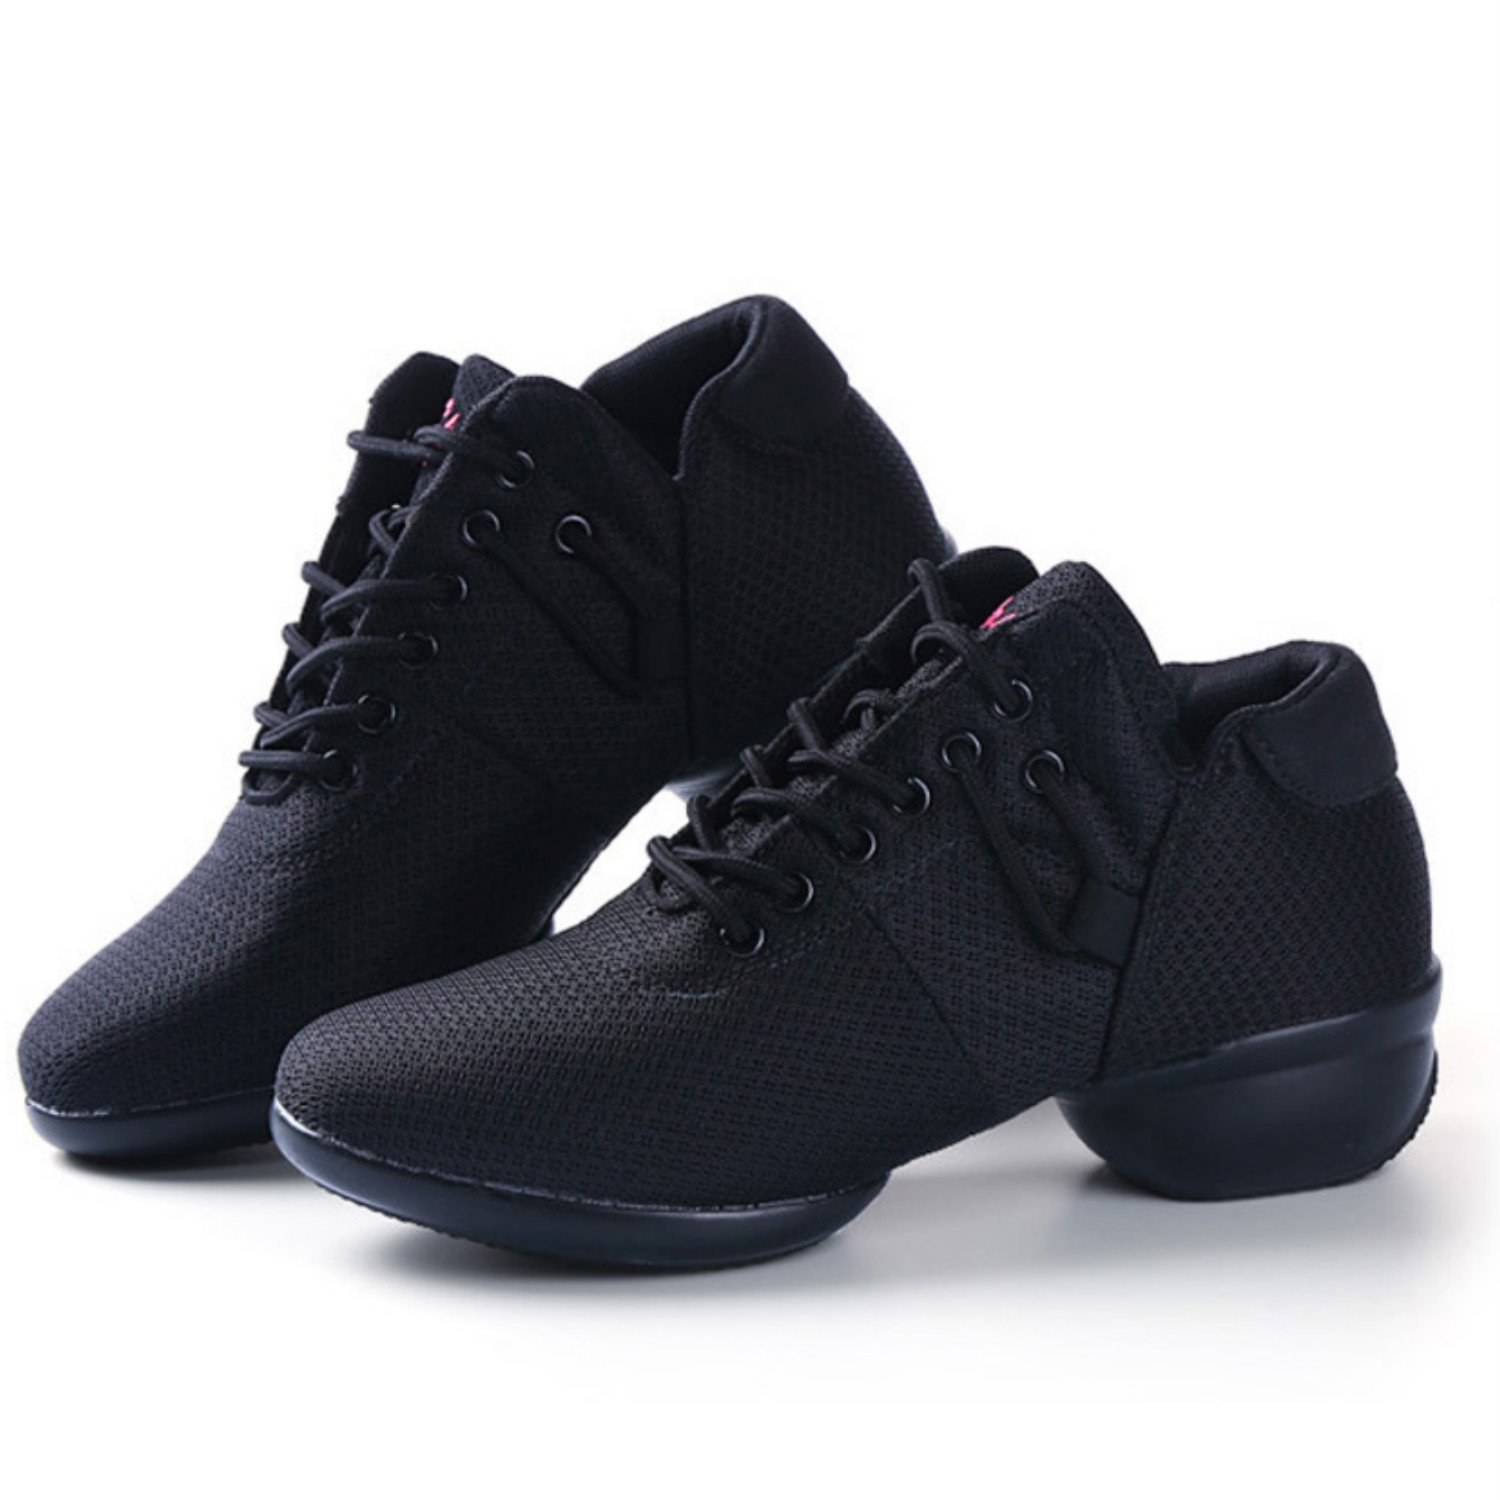 Womens Mesh Jazz Shoes Lady Girls Modern Split-Sole Dance Sneakers for Ballroom Breathable Lightweight